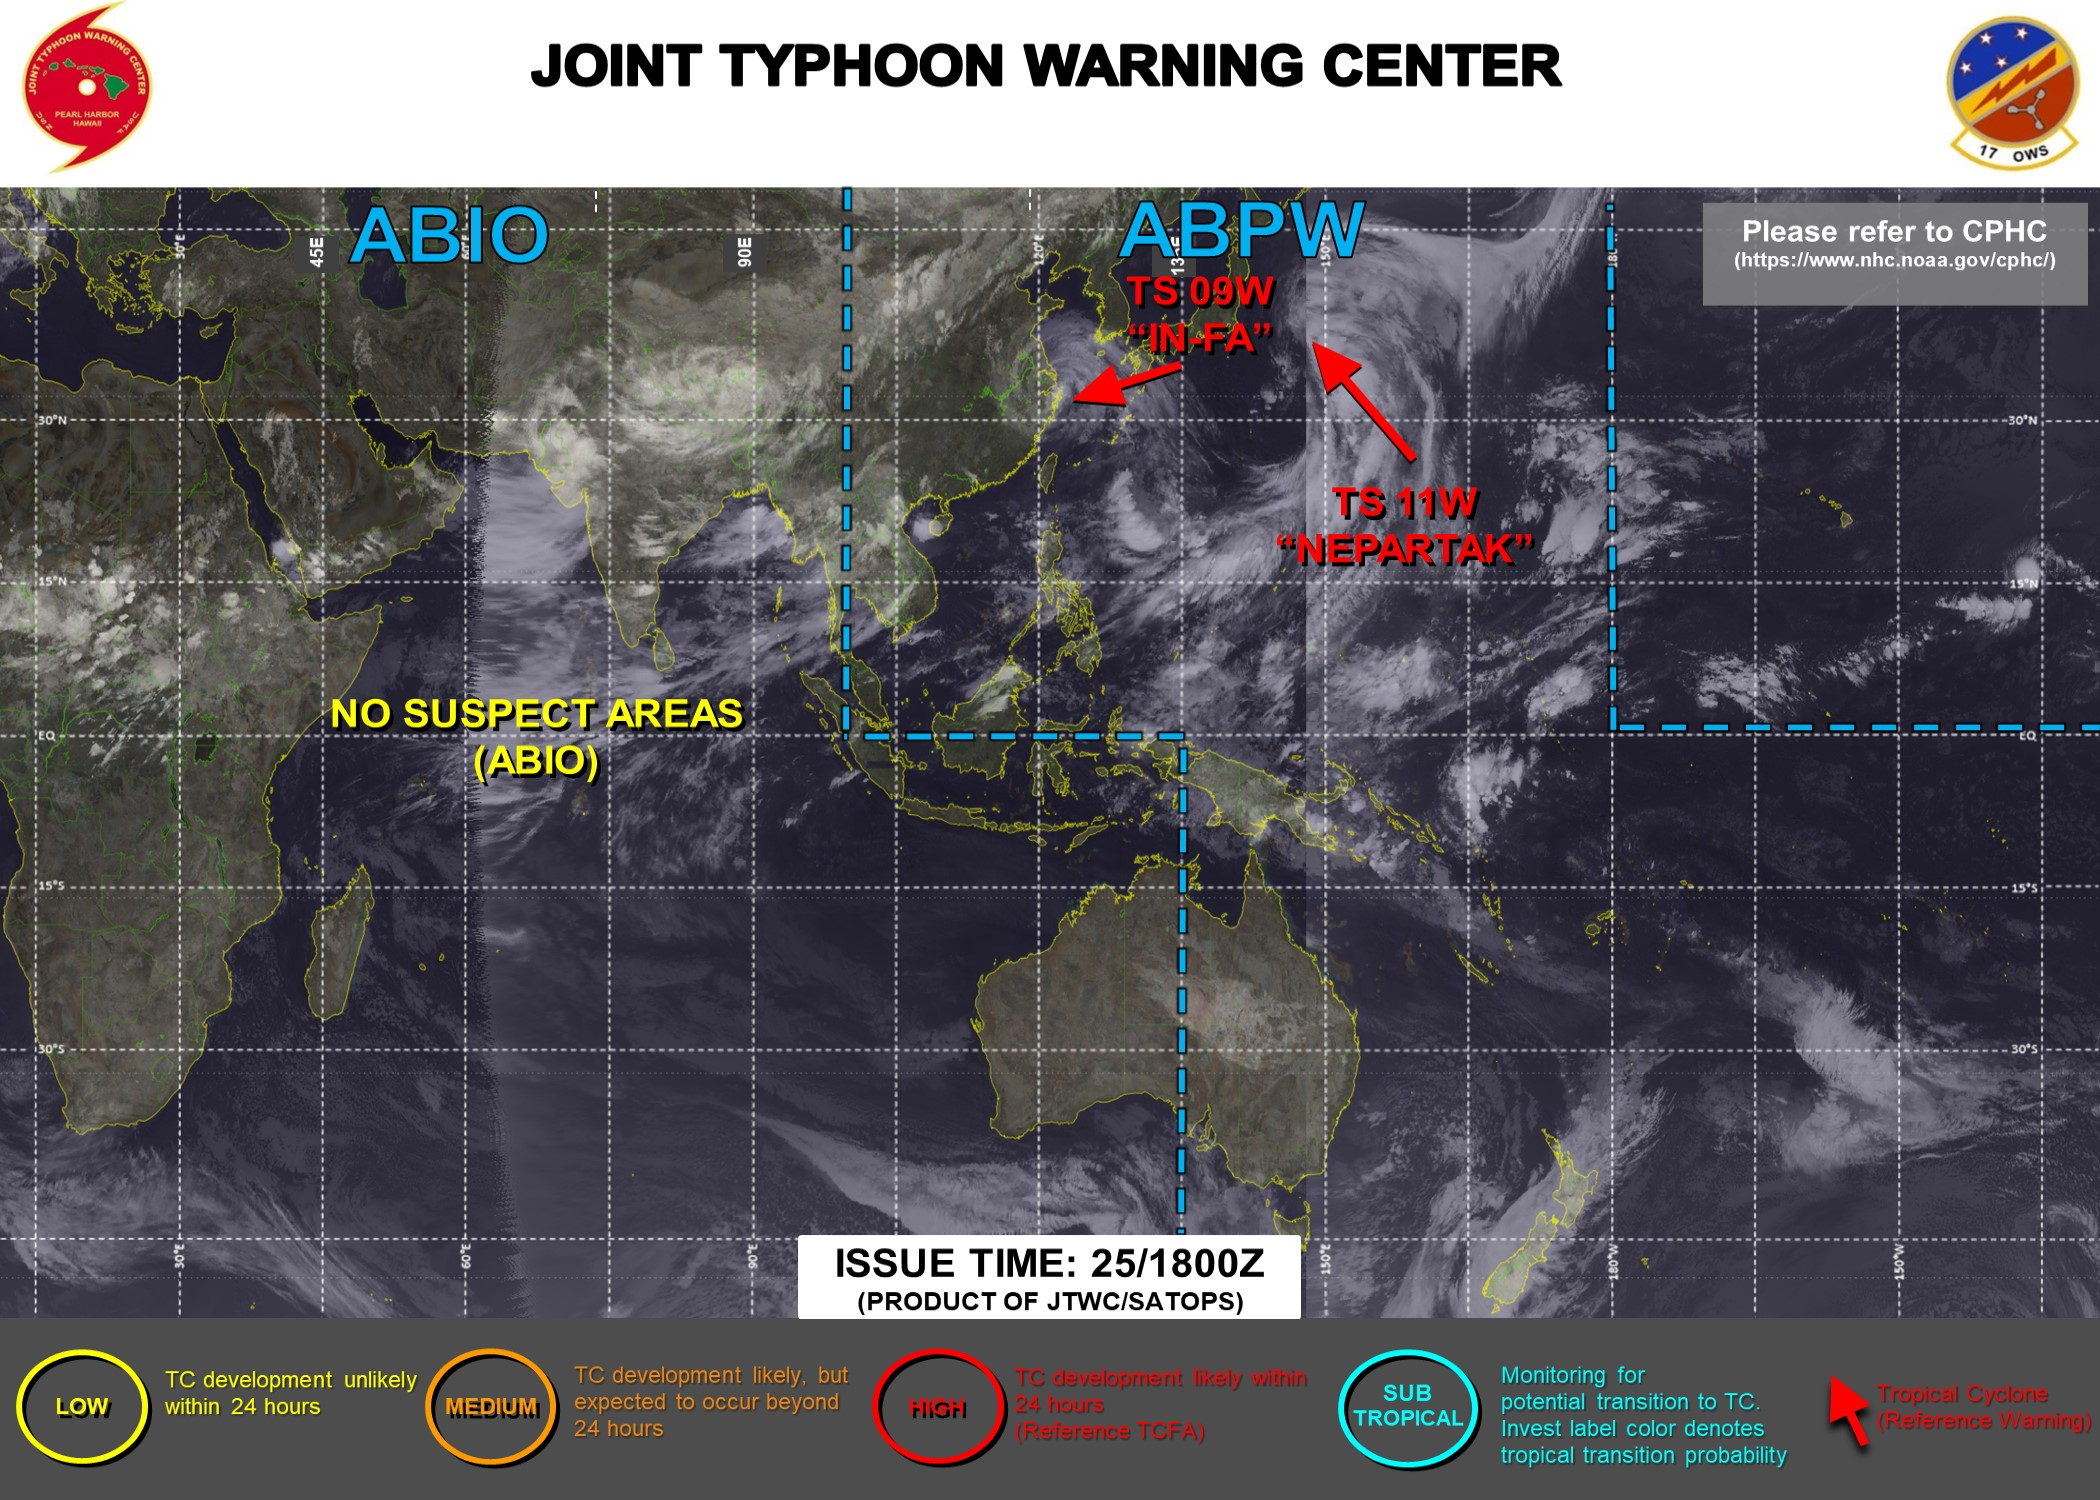 JTWC HAS BEEN ISSUING 6HOURLY WARNINGS AND 3HOURLY SATELLITE BULLETINS ON 09W AND 11W.